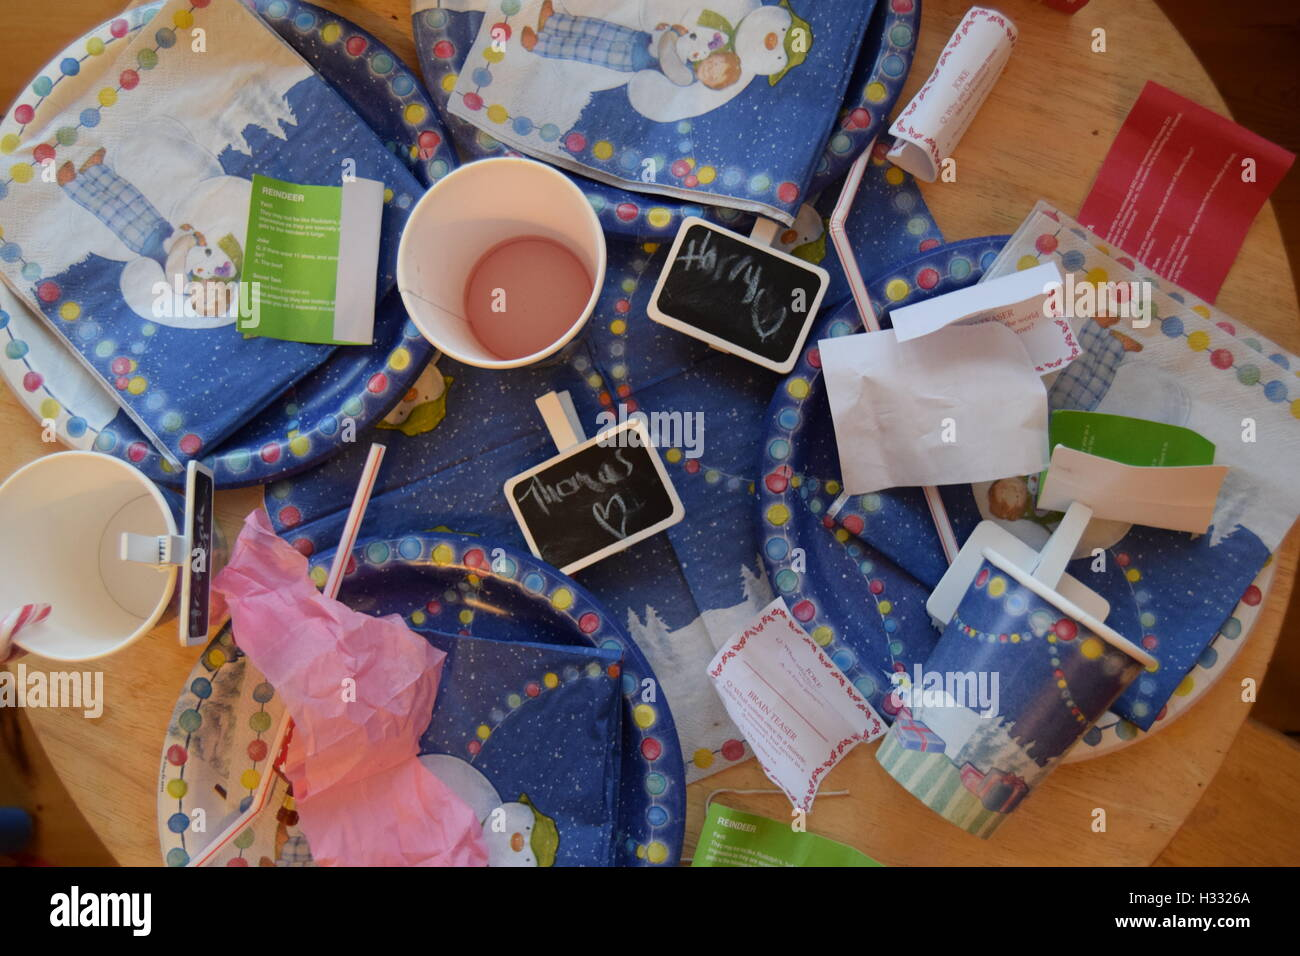 Children's party mess - Stock Image